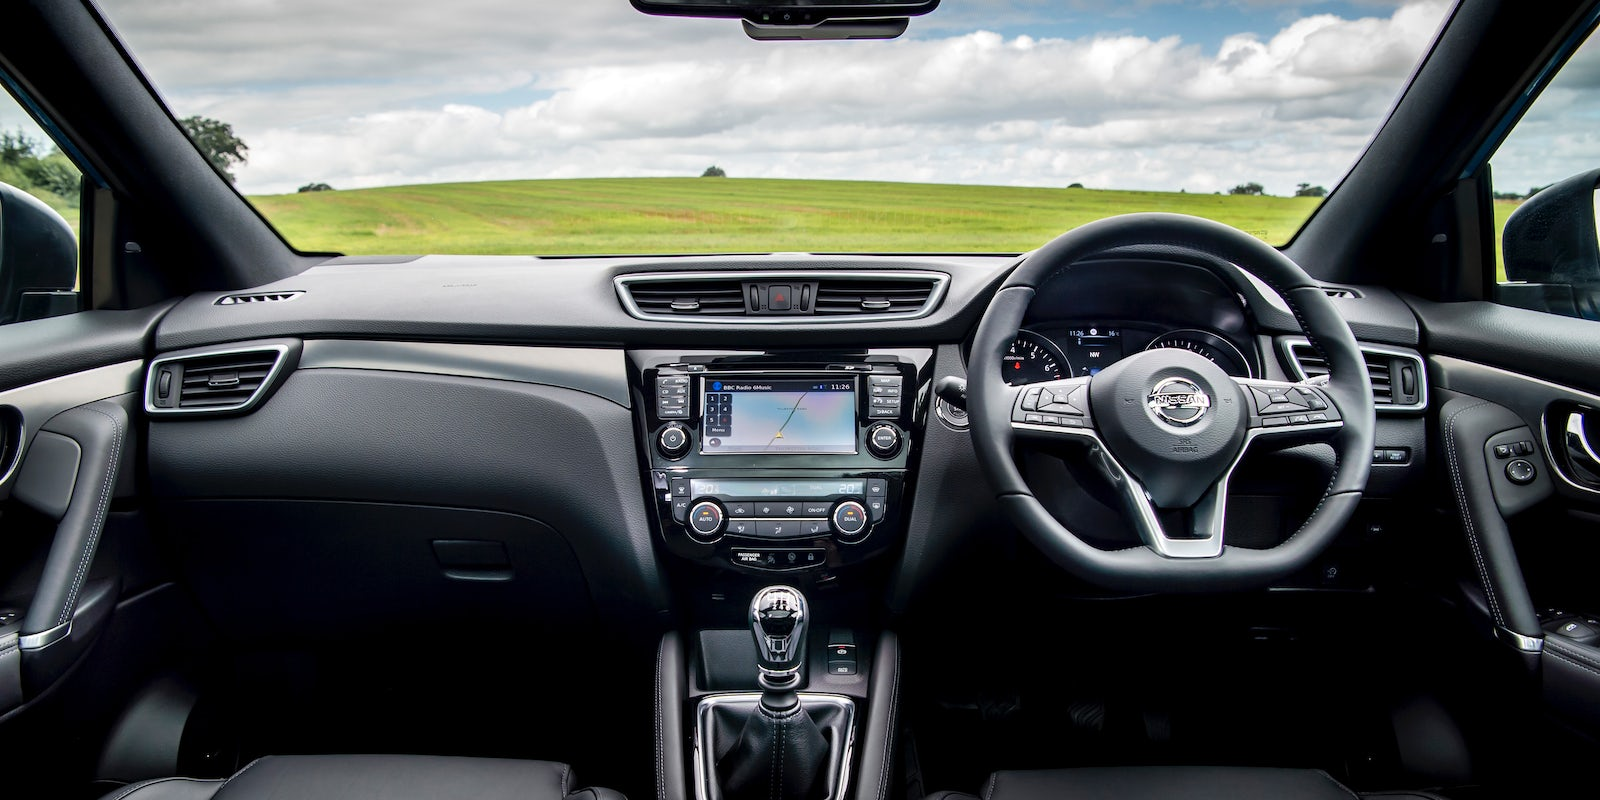 2017 nissan qashqai release date price review interior autos post - Nissan qashqai 2017 interior ...